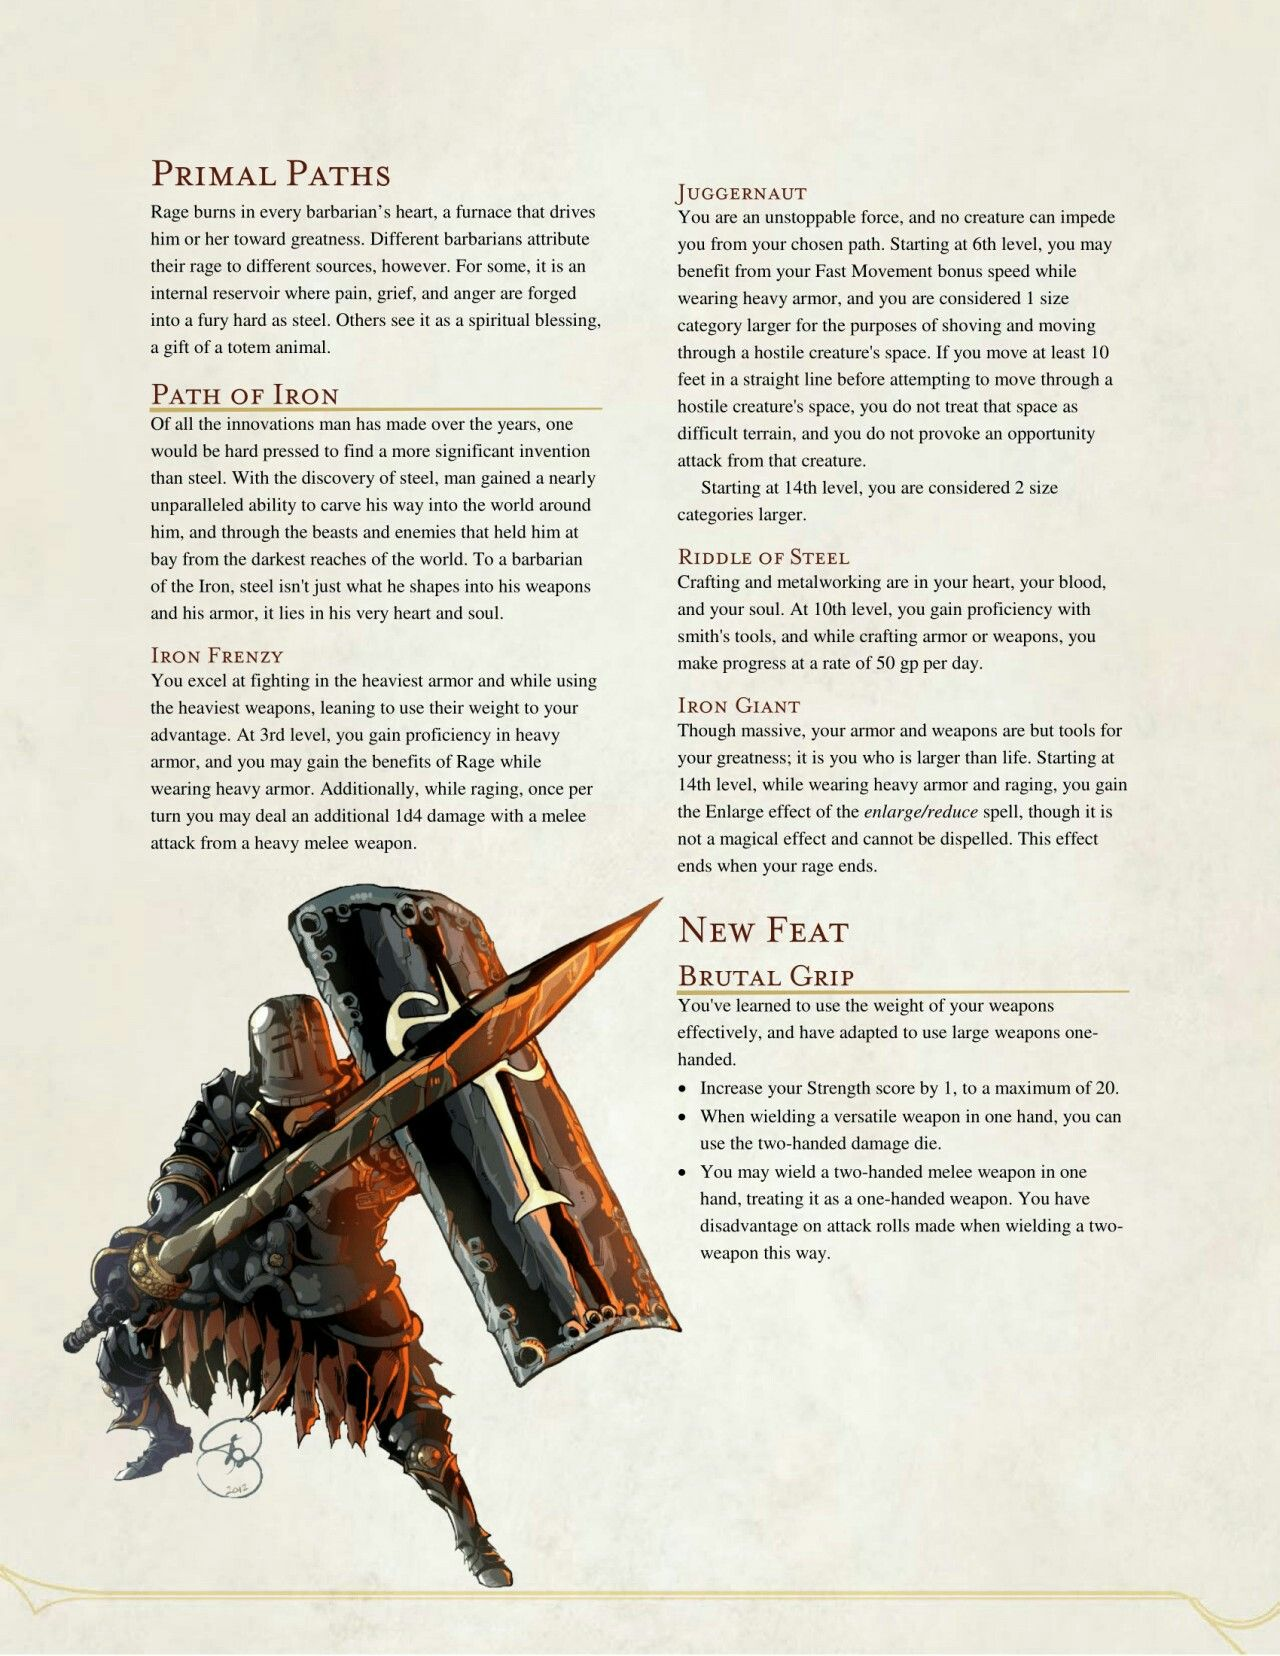 Pin by My Info on dnd 5e homebrew | Pinterest | RPG, Dragons and Dnd ...